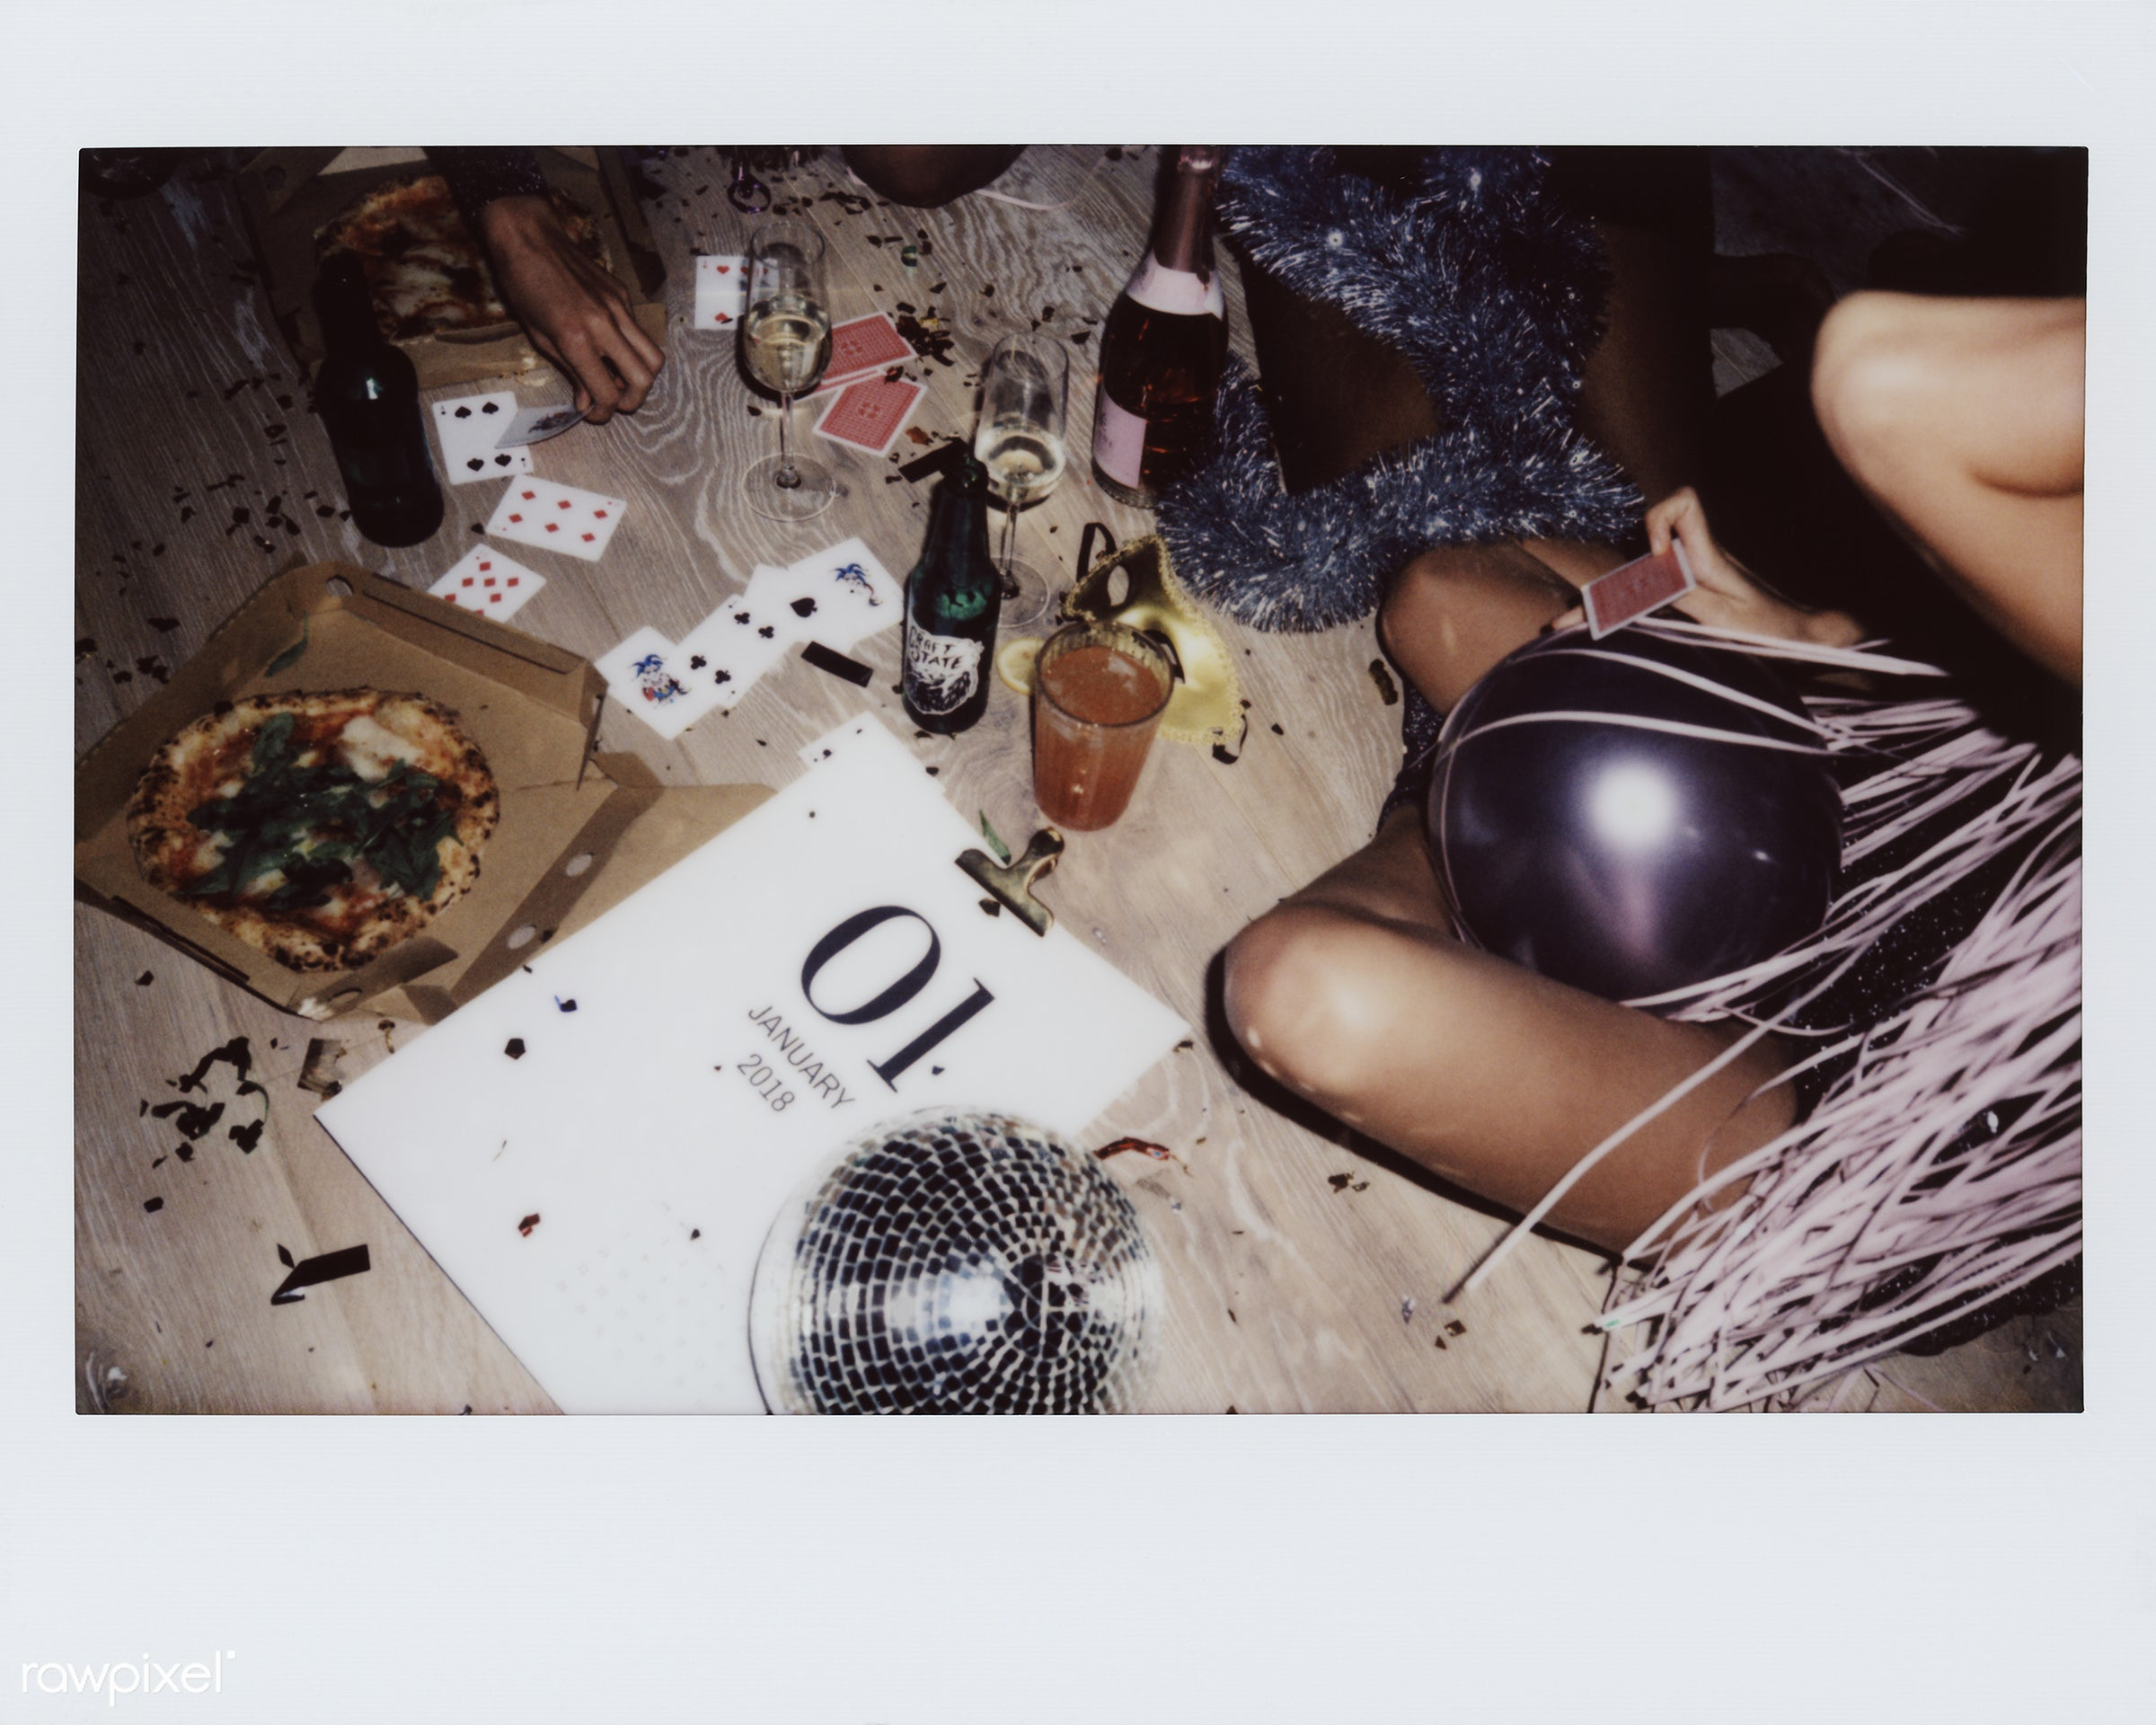 People enjoying a party together - food, game, new year, pizza, birthday, 2018, beverage, birthday party, calendar, cards,...